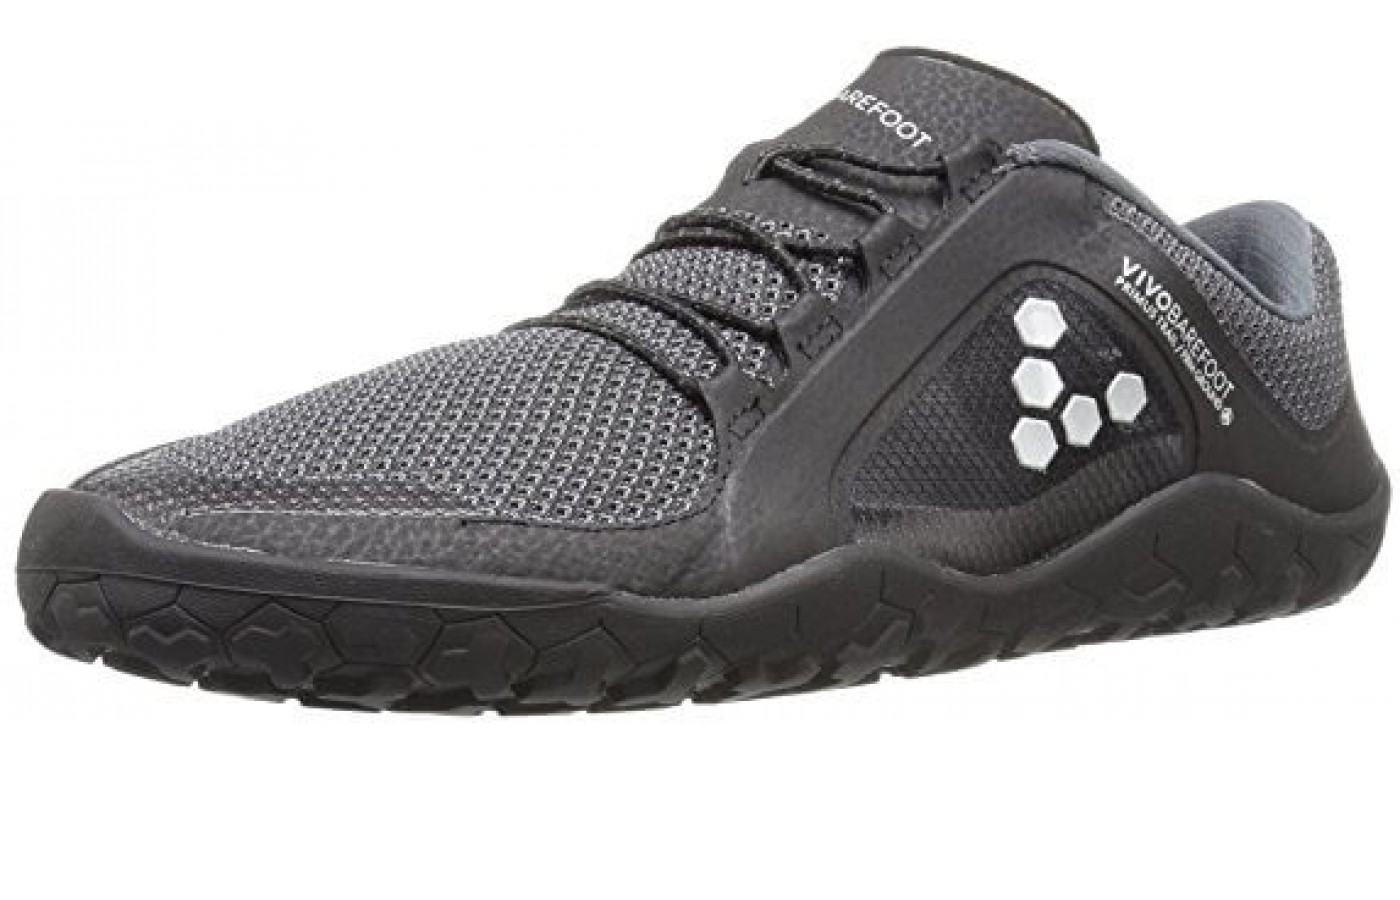 The Vivobarefoot Primus Trail FG is made with a breathable mesh to keep your foot cool